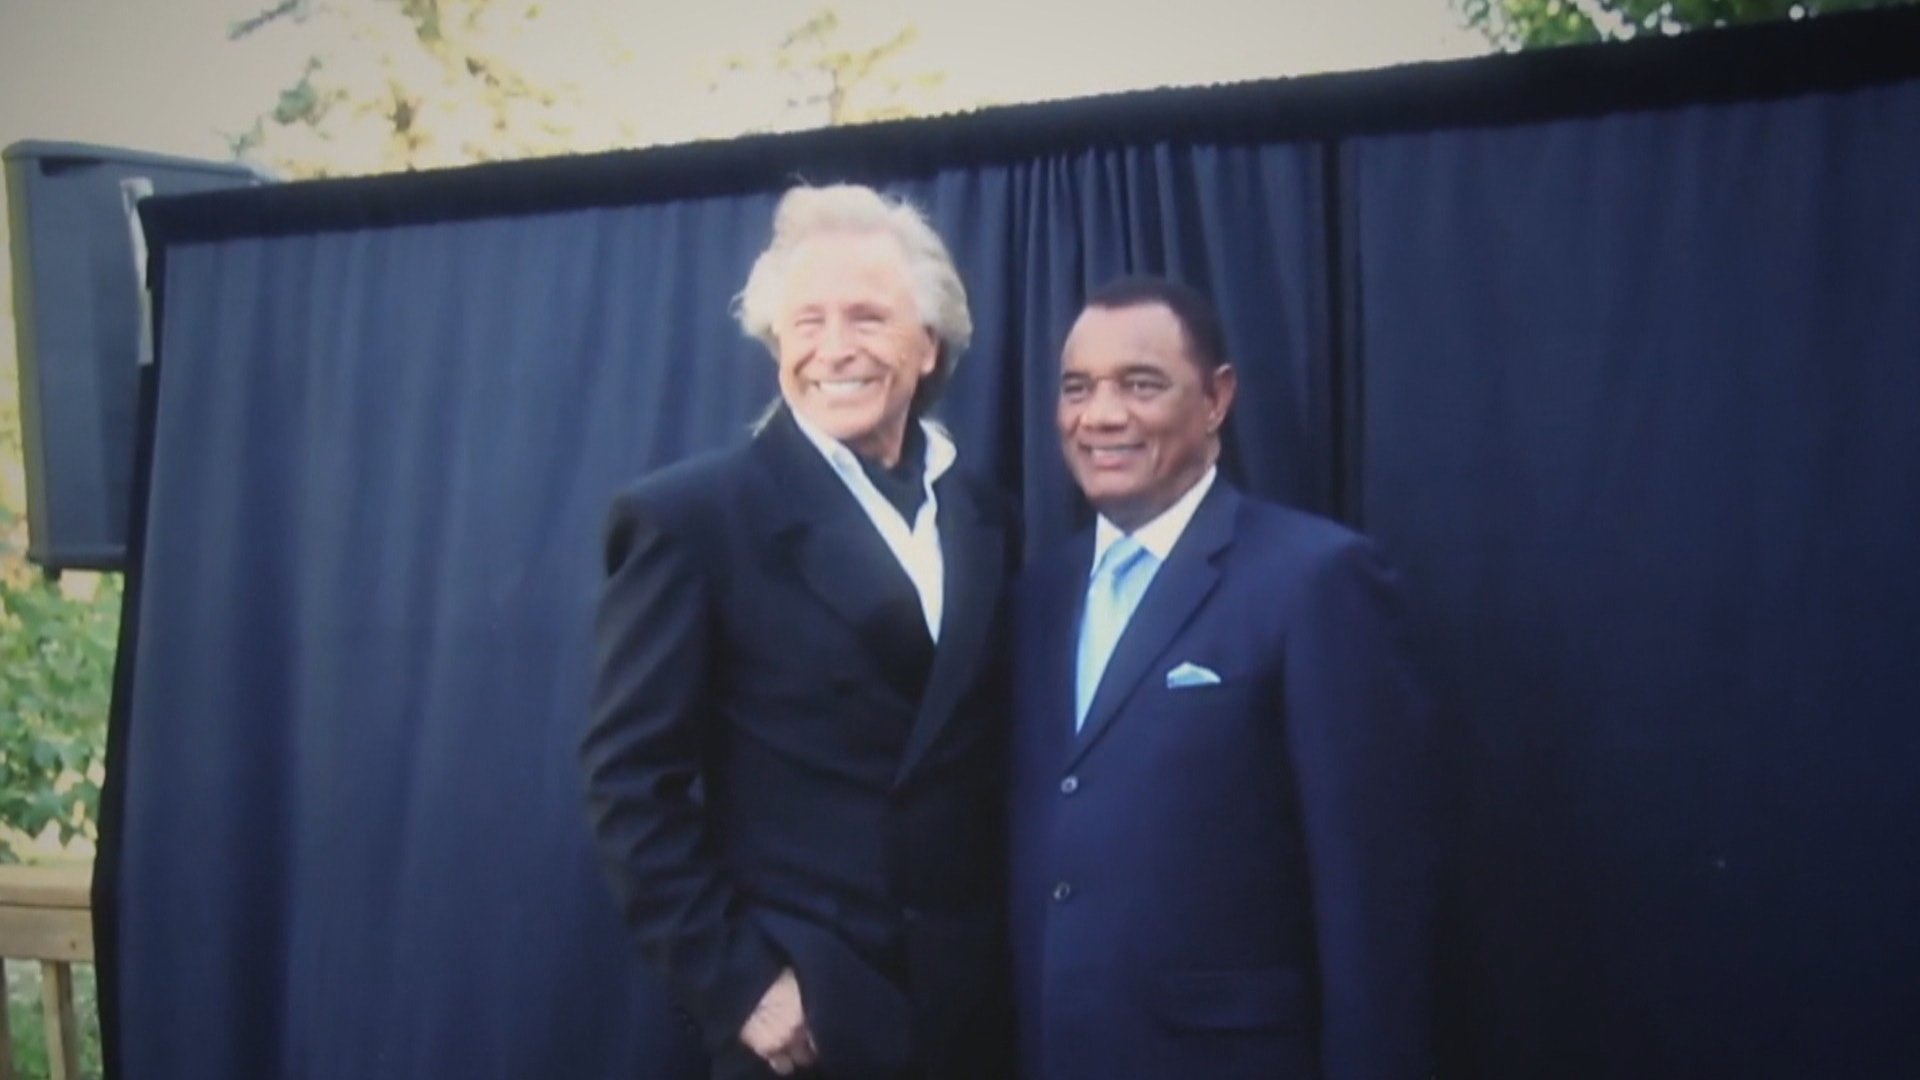 Christie poses for a photograph with Nygard at the wedding of Nygard's daughter in Winnipeg in July 2011. (Submitted by Stephen Feralio)